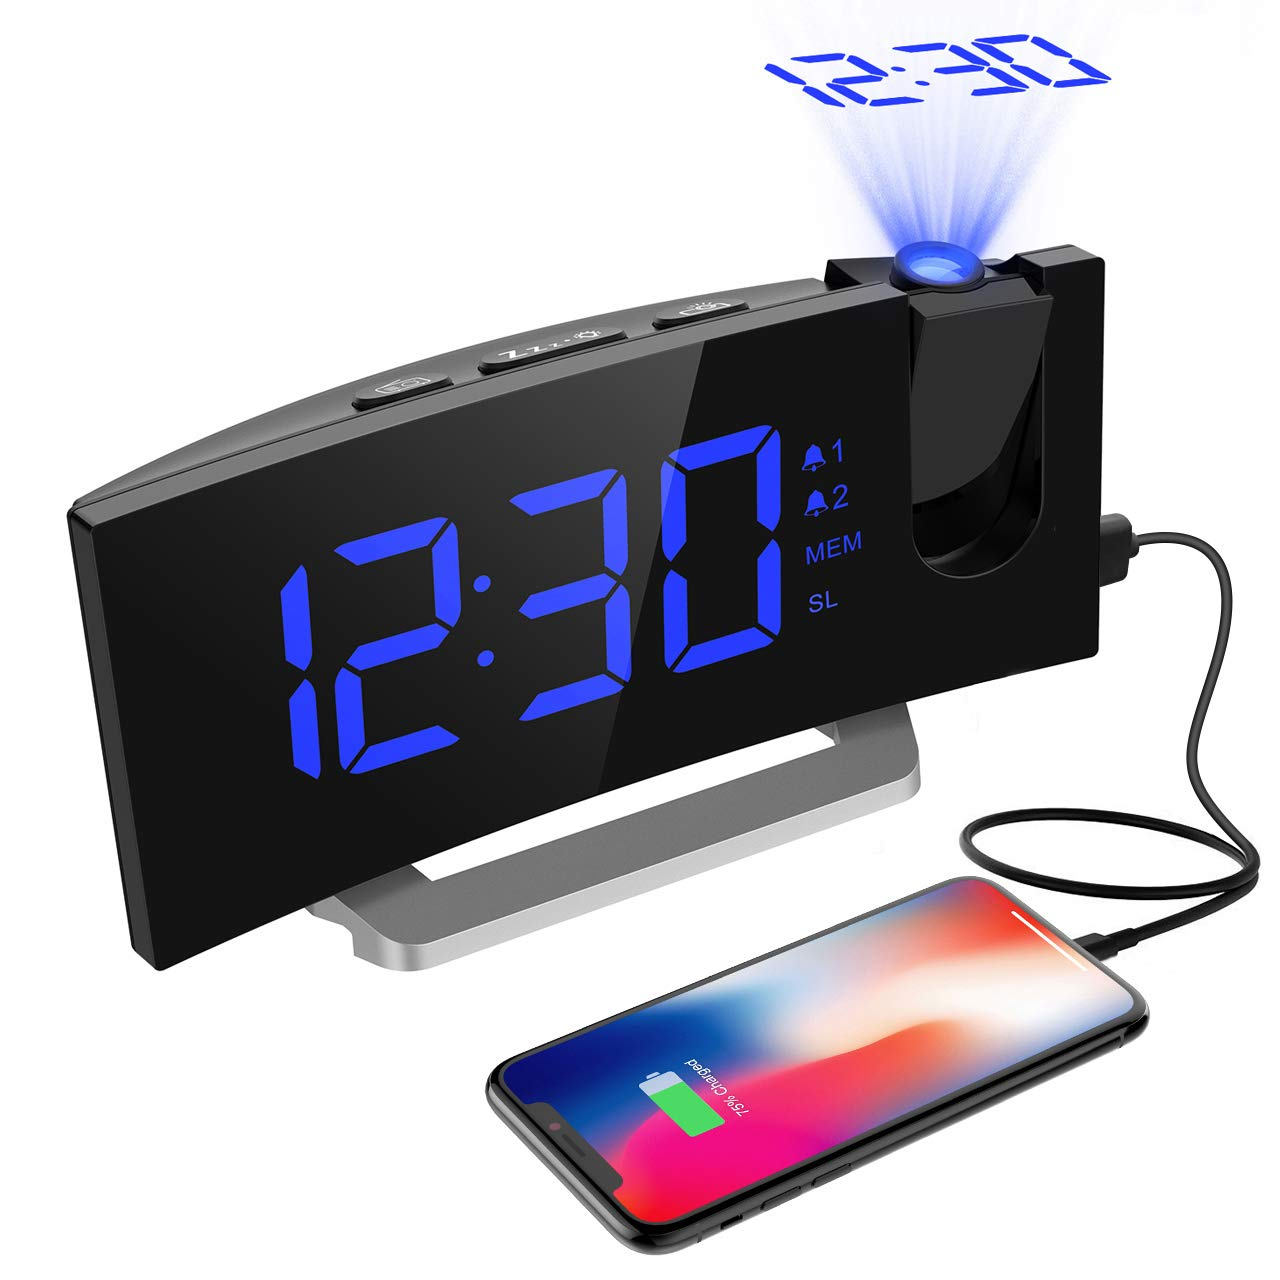 Alarm Clocks,[ Newest Version ] 5'' LED Curved-Screen Projection Clock with Dual Alarms, Digital FM Radio Clock with USB Charging Port, Snooze Function, Sleep Timer with Dimmer,12/24 Hour -Blue Aitop